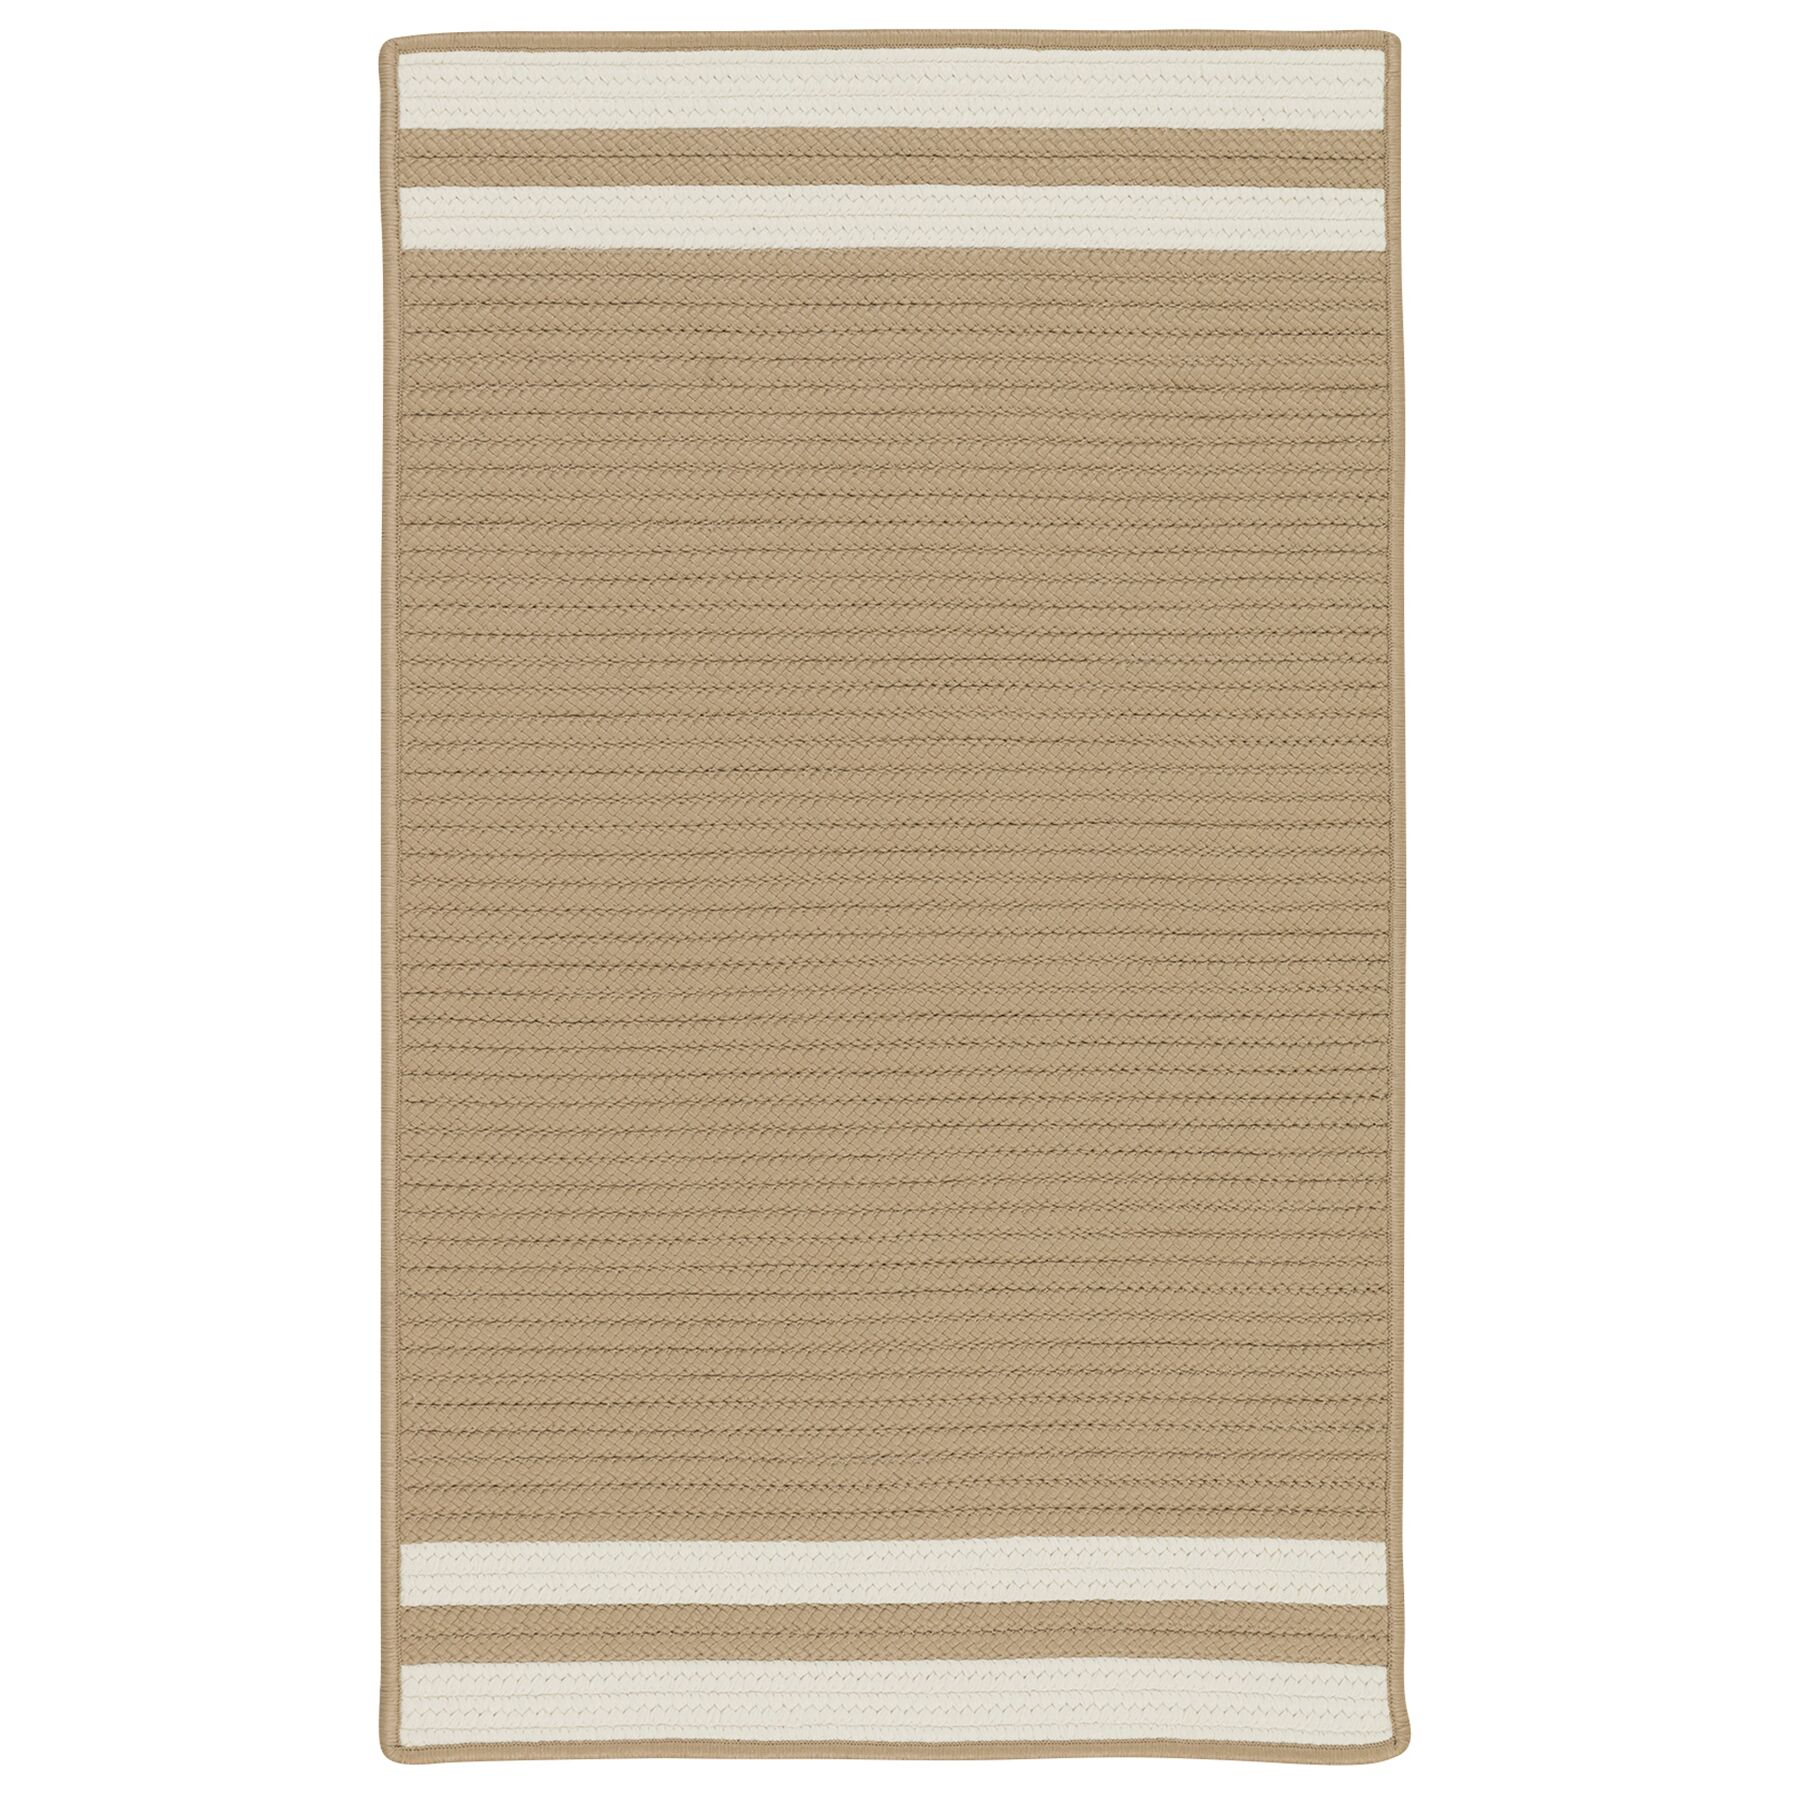 Kellie Stripe Hand-Braided Brown/Ivory Indoor/Outdoor Area Rug Rug Size: Rectangle 4' x 6'